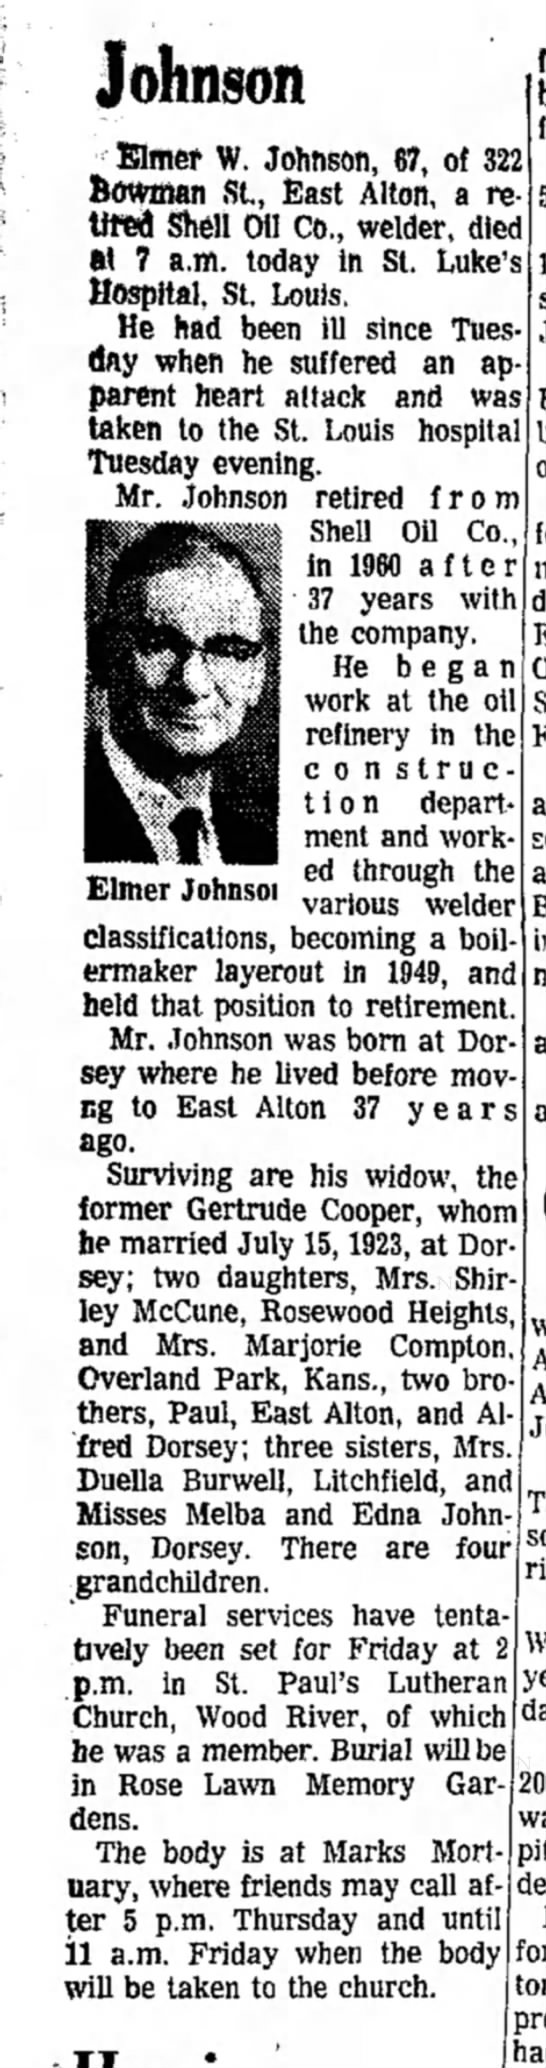 Johnson_Elmer_Obit_1964 - Joh nson Klmw W. Johnson, 67, of 322 Bowman...